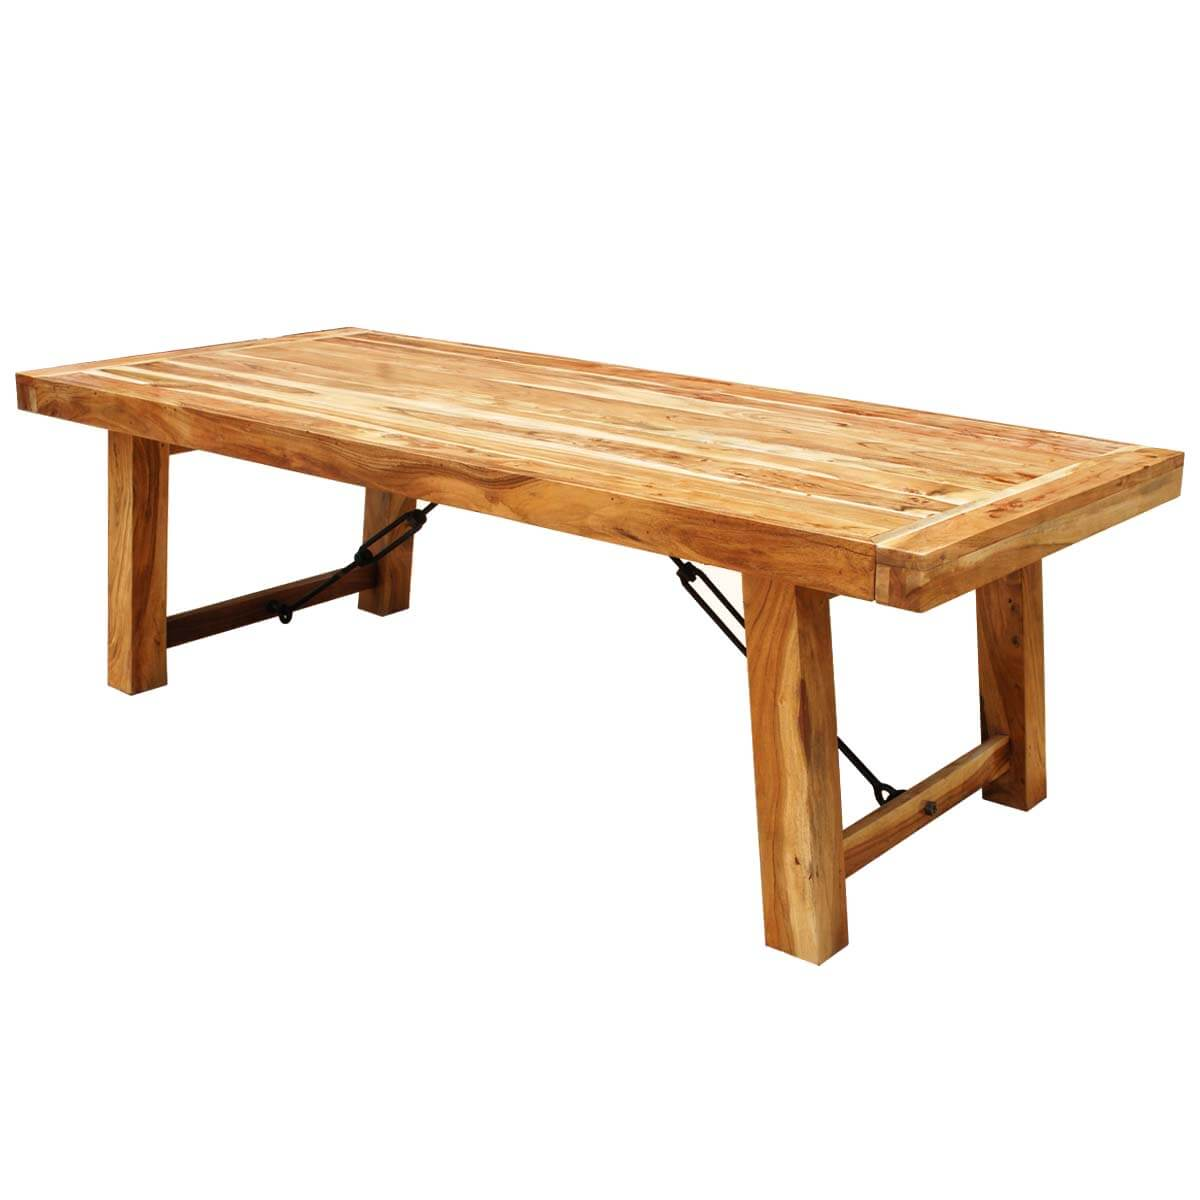 Rustic wood large santa fe dining room table w extensions for Dining room tables large